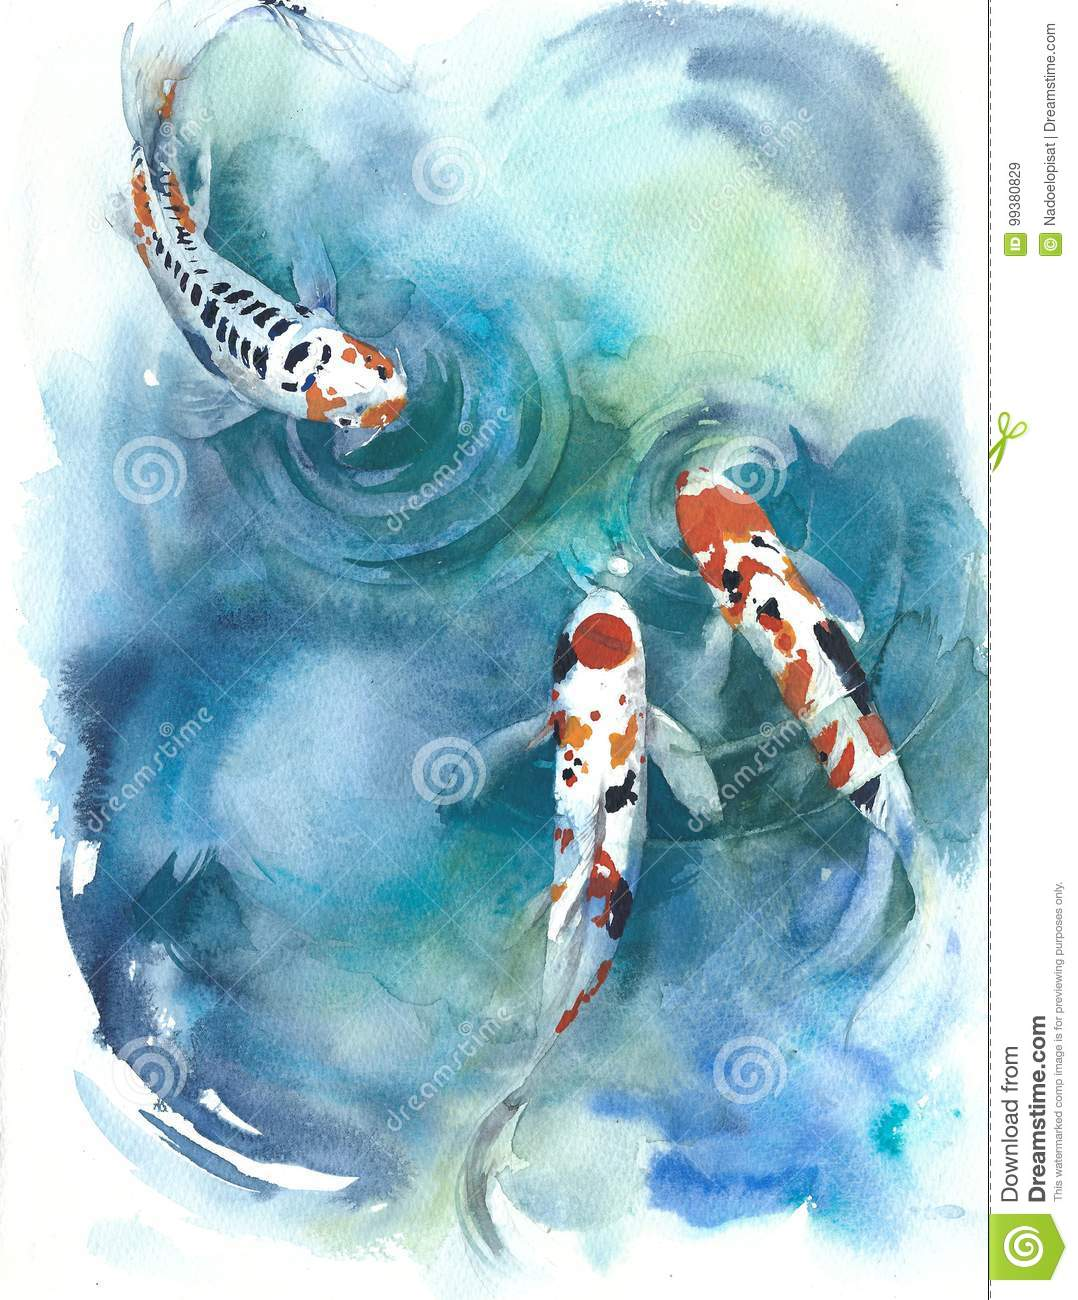 Koi fish Japanese symbol in the pond watercolor painting illustration